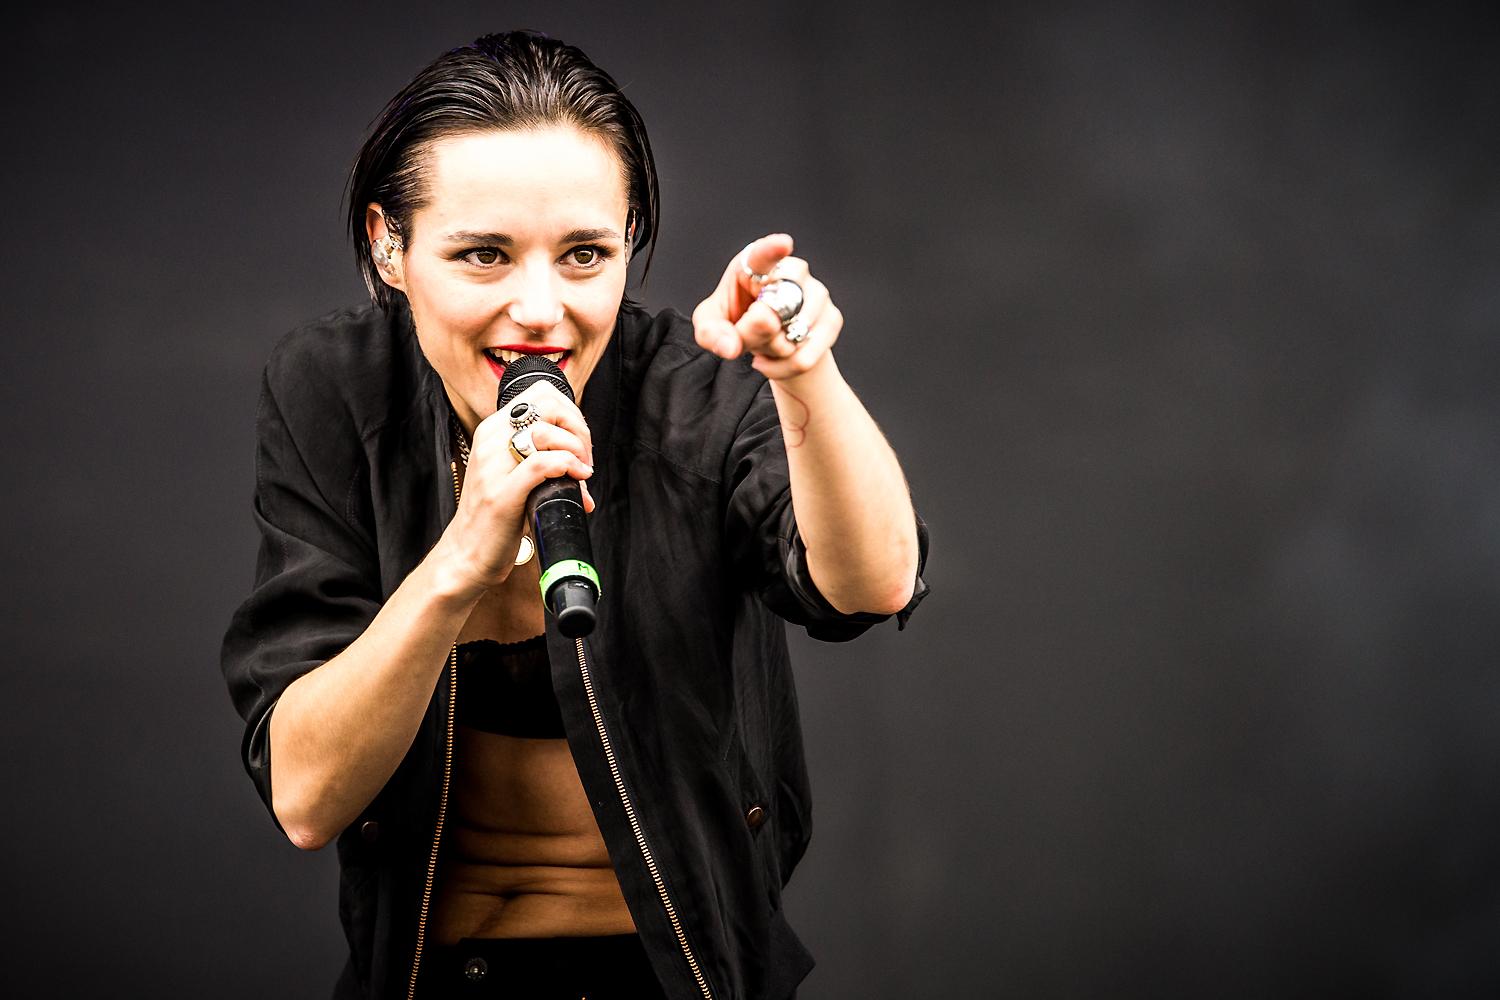 Savages @ Rock Werchter 2017 (Jan Van den Bulck)